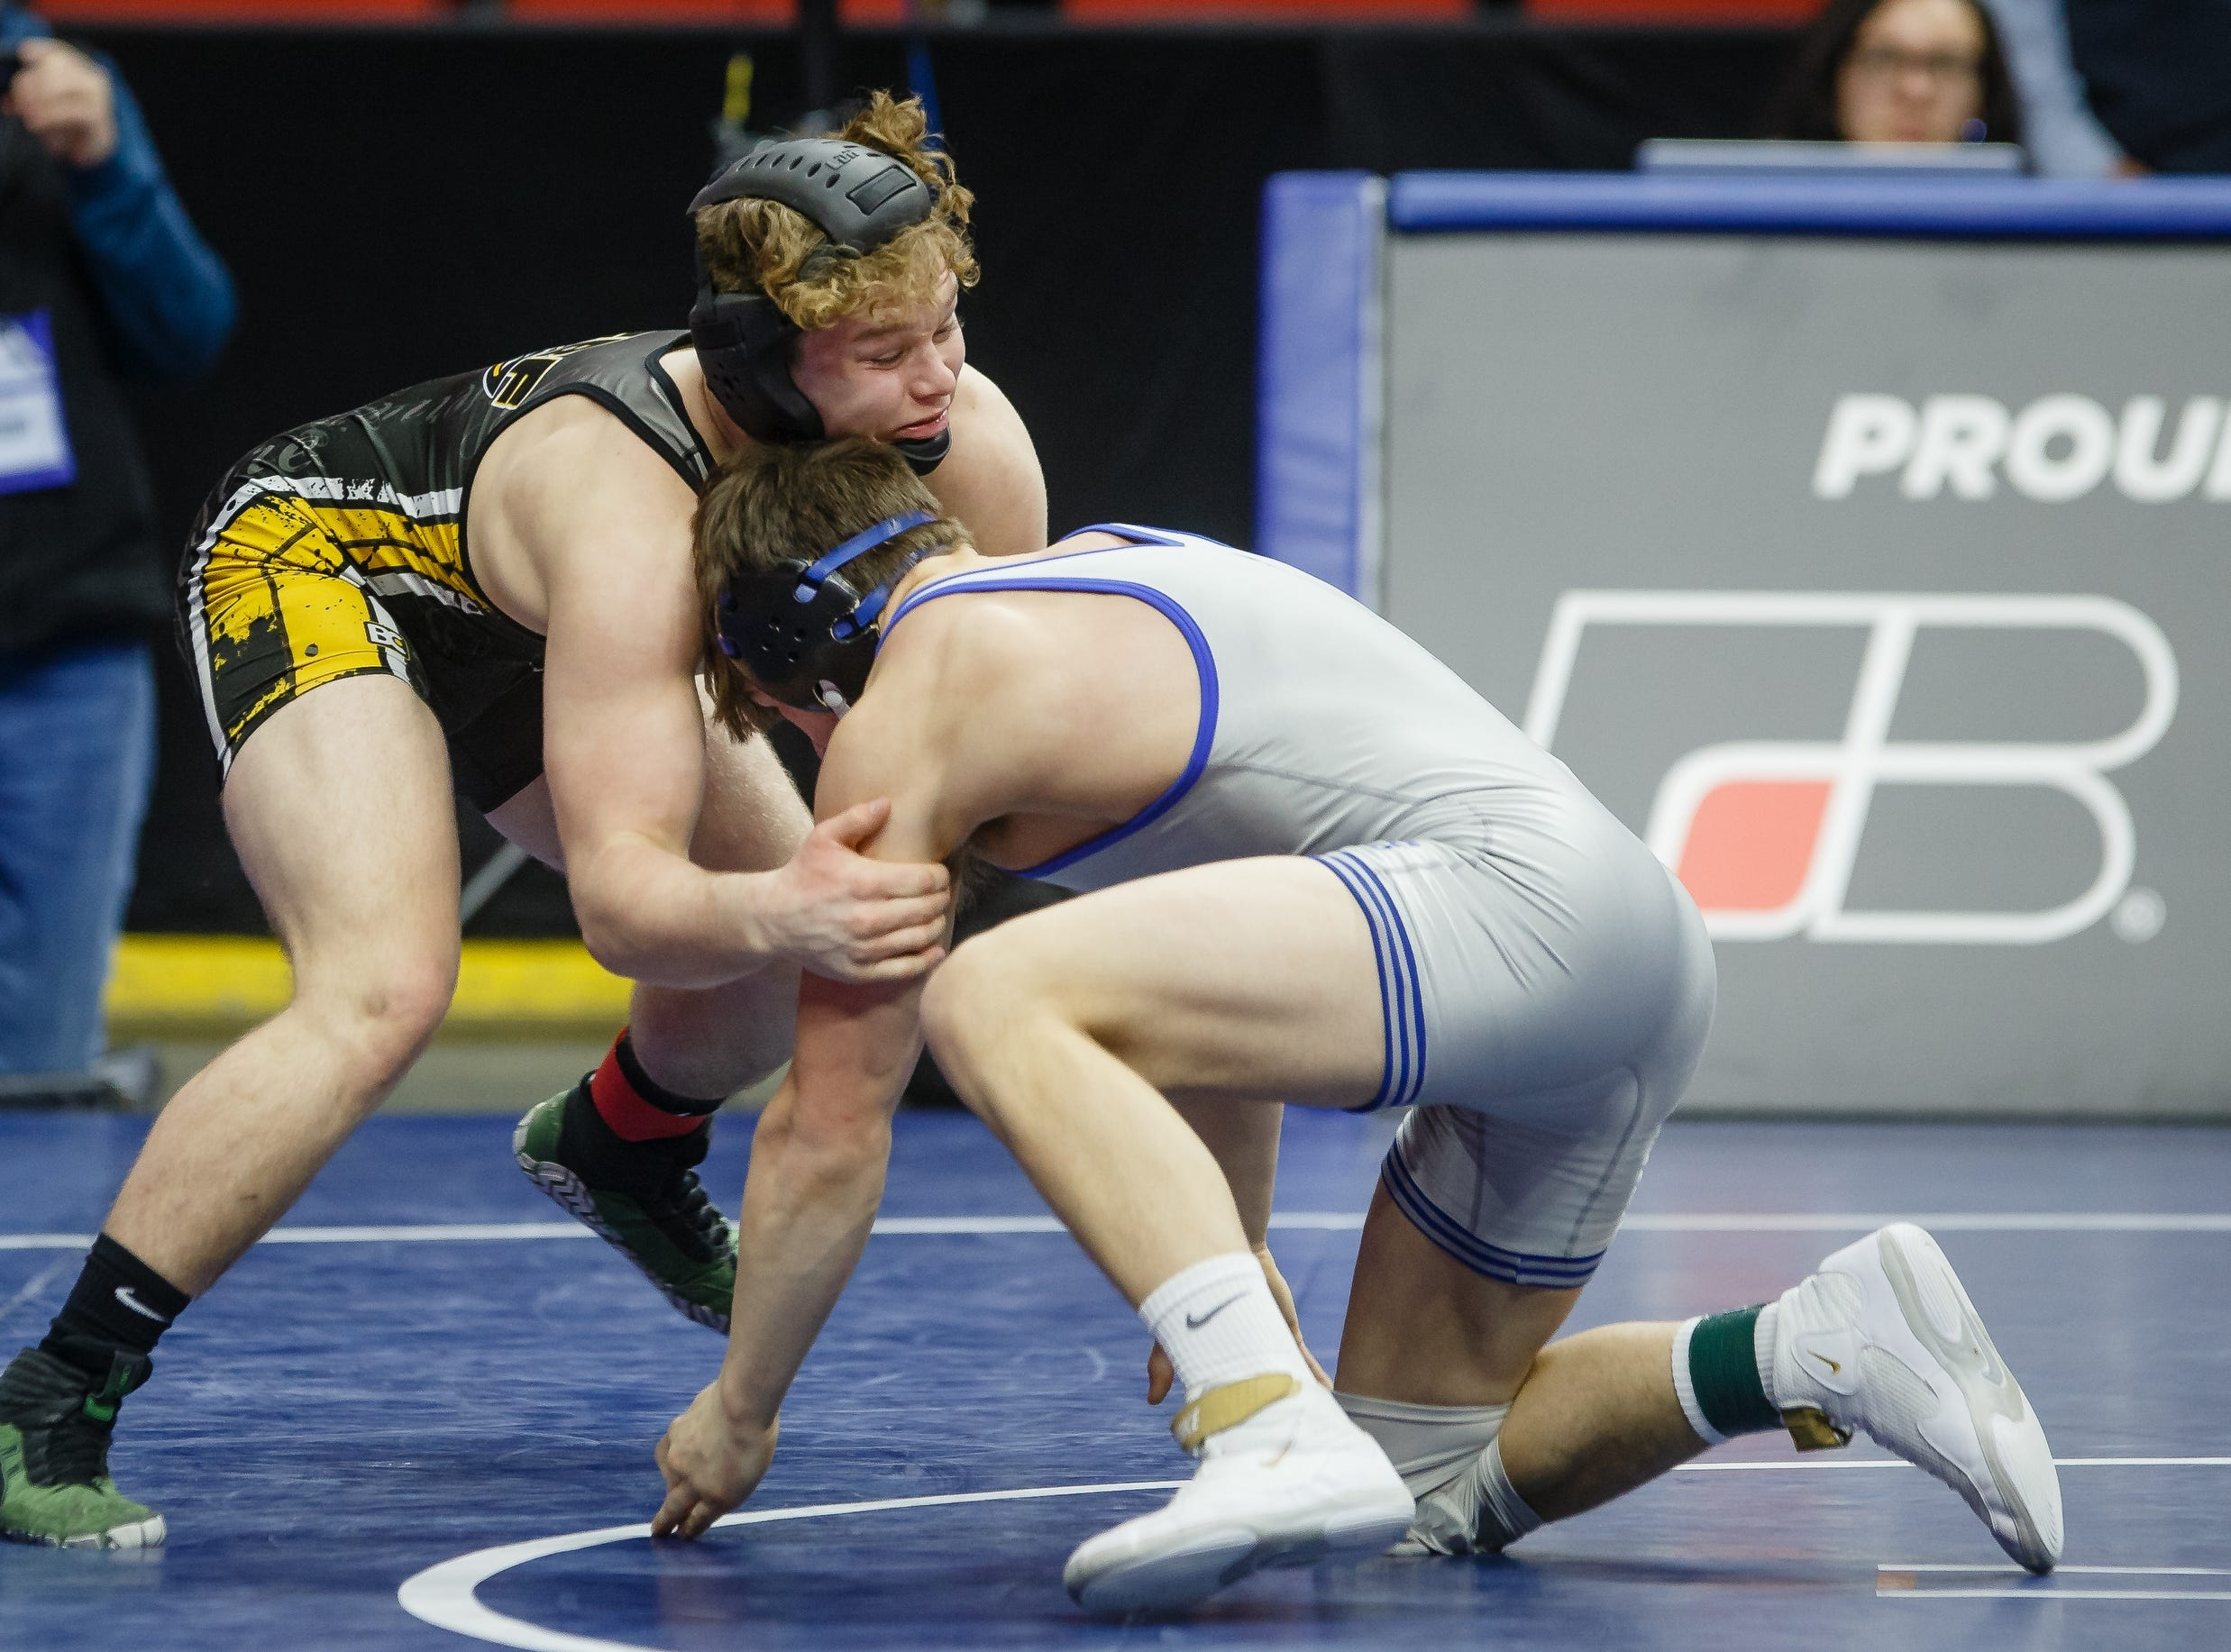 Sage Walker of Eddyville-Blakesburg-Fremont wrestles Colter Bye of Crestwood, Cresco during their class 2A 170 pound state championship semi-final match on Friday, Feb. 15, 2019 in Des Moines. Walker moves on with a 12-4 major decision.